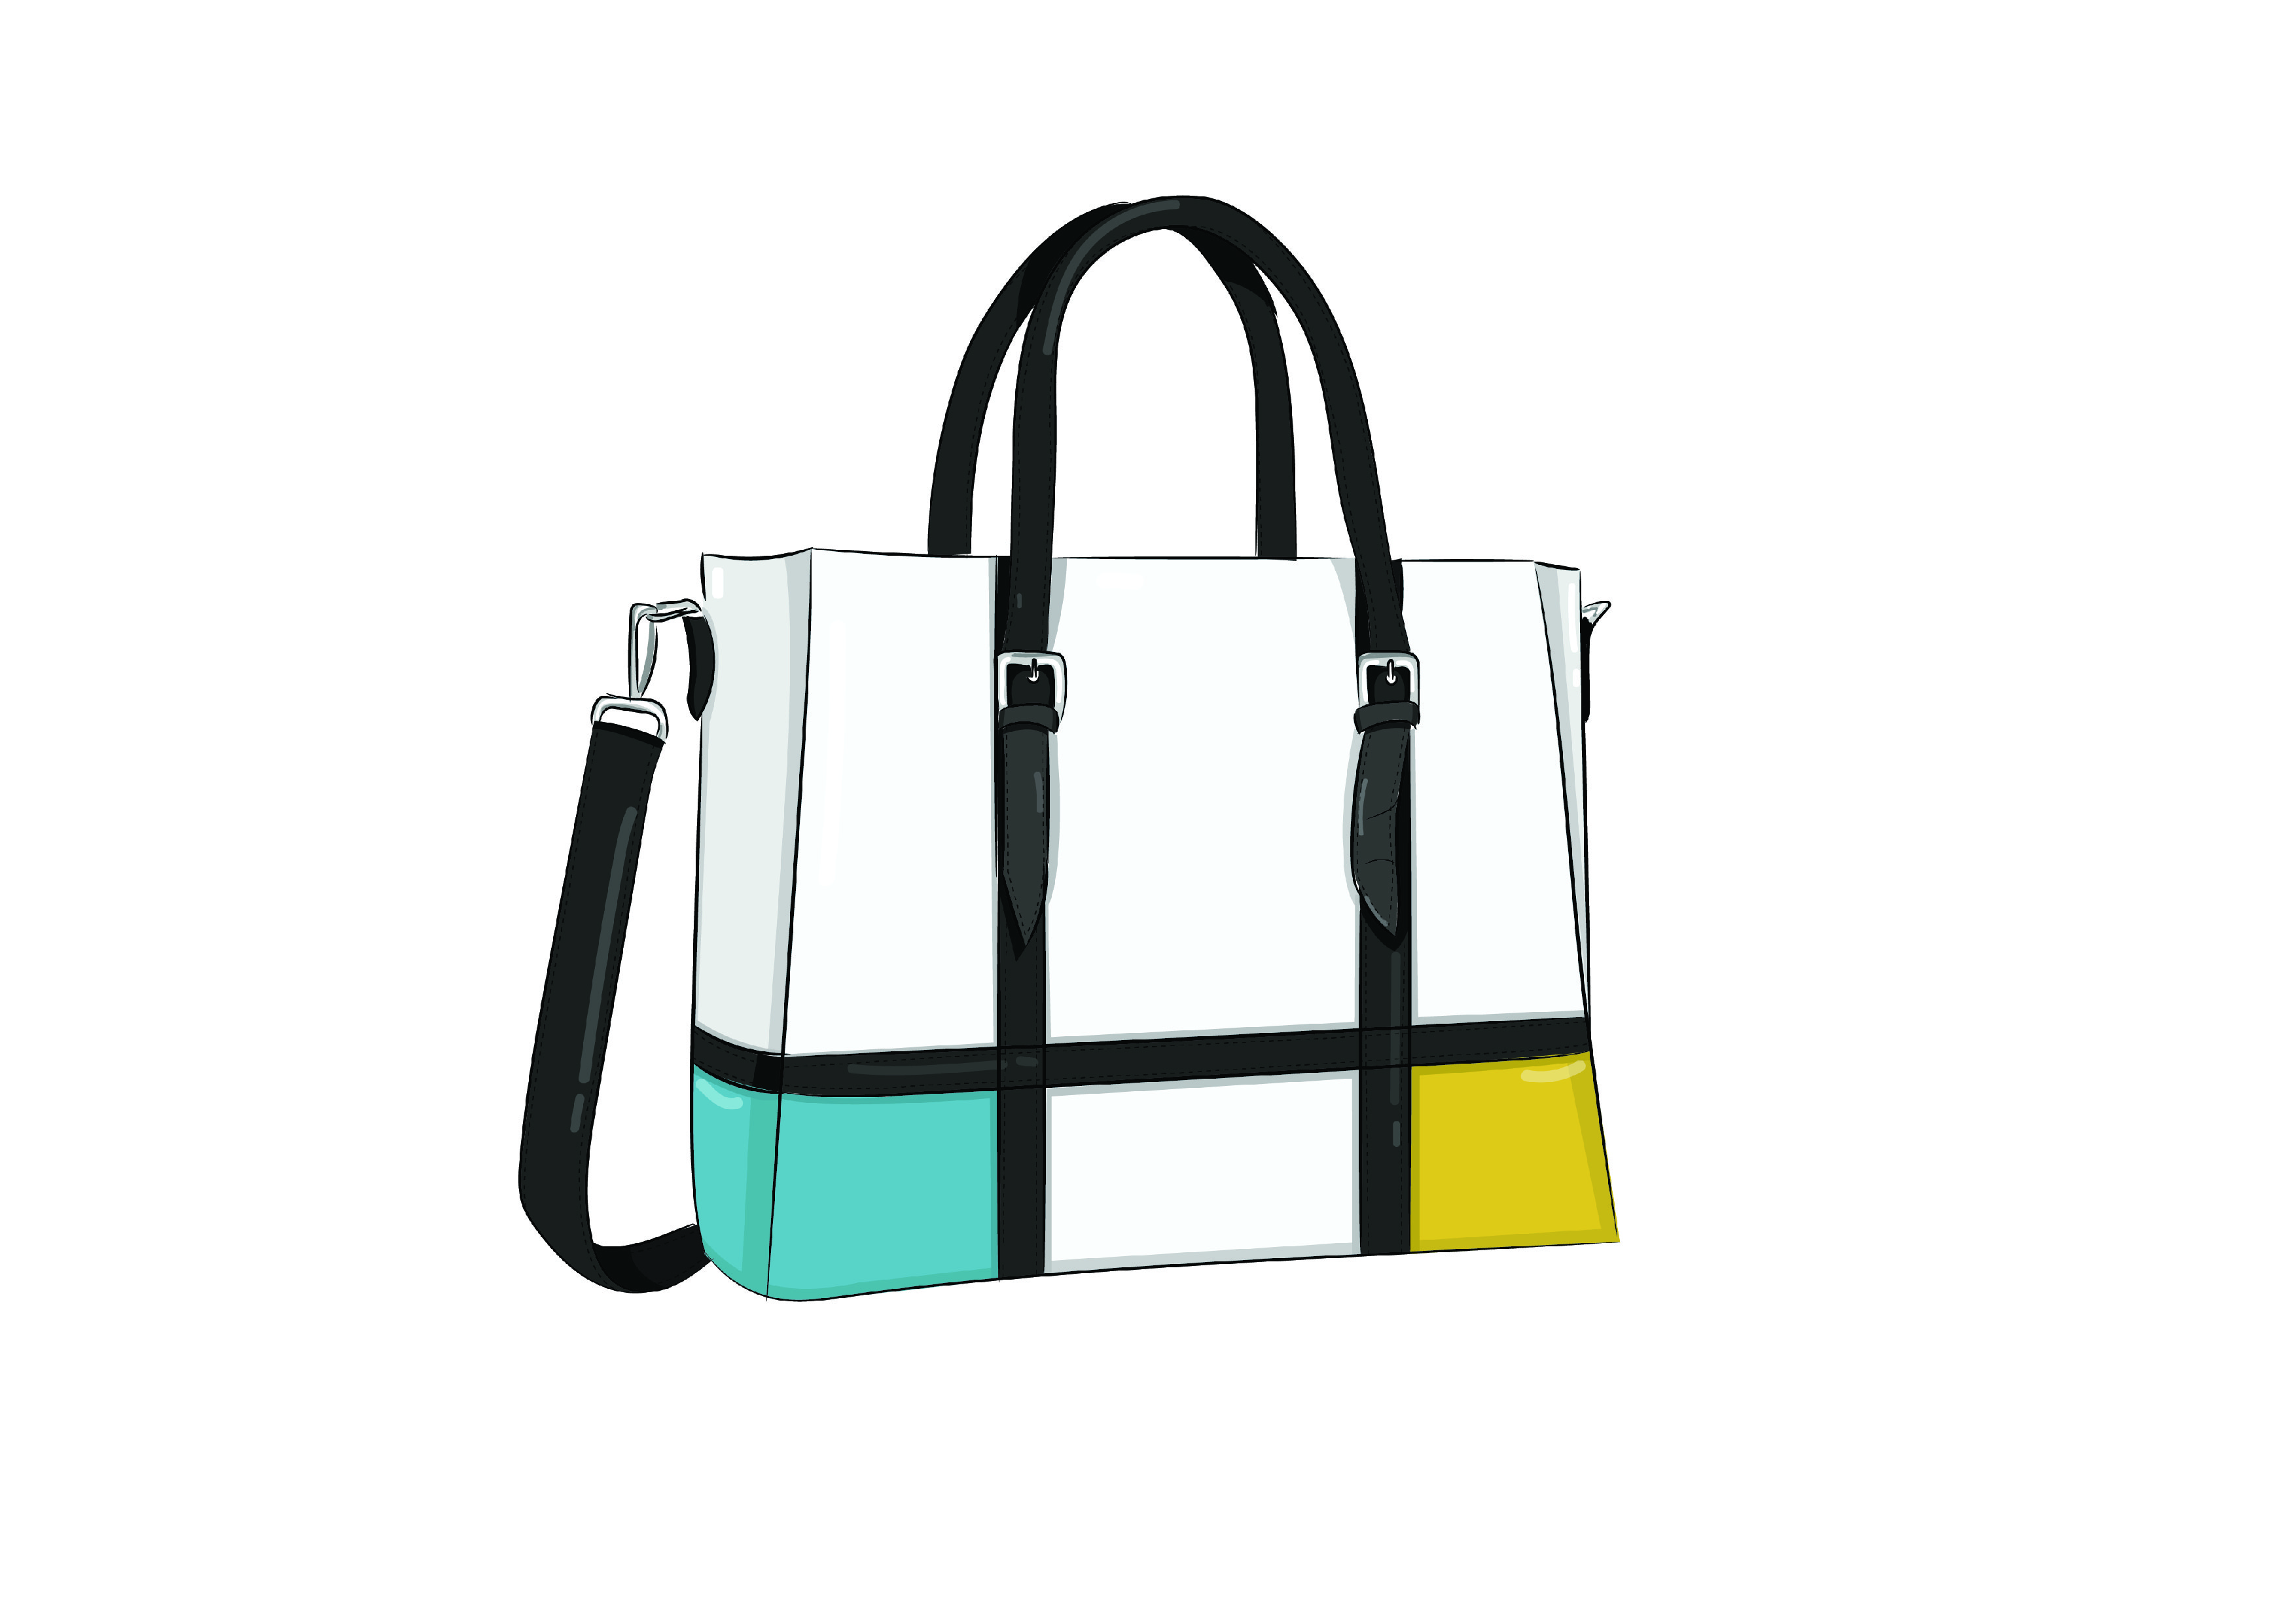 I will design bags for your company